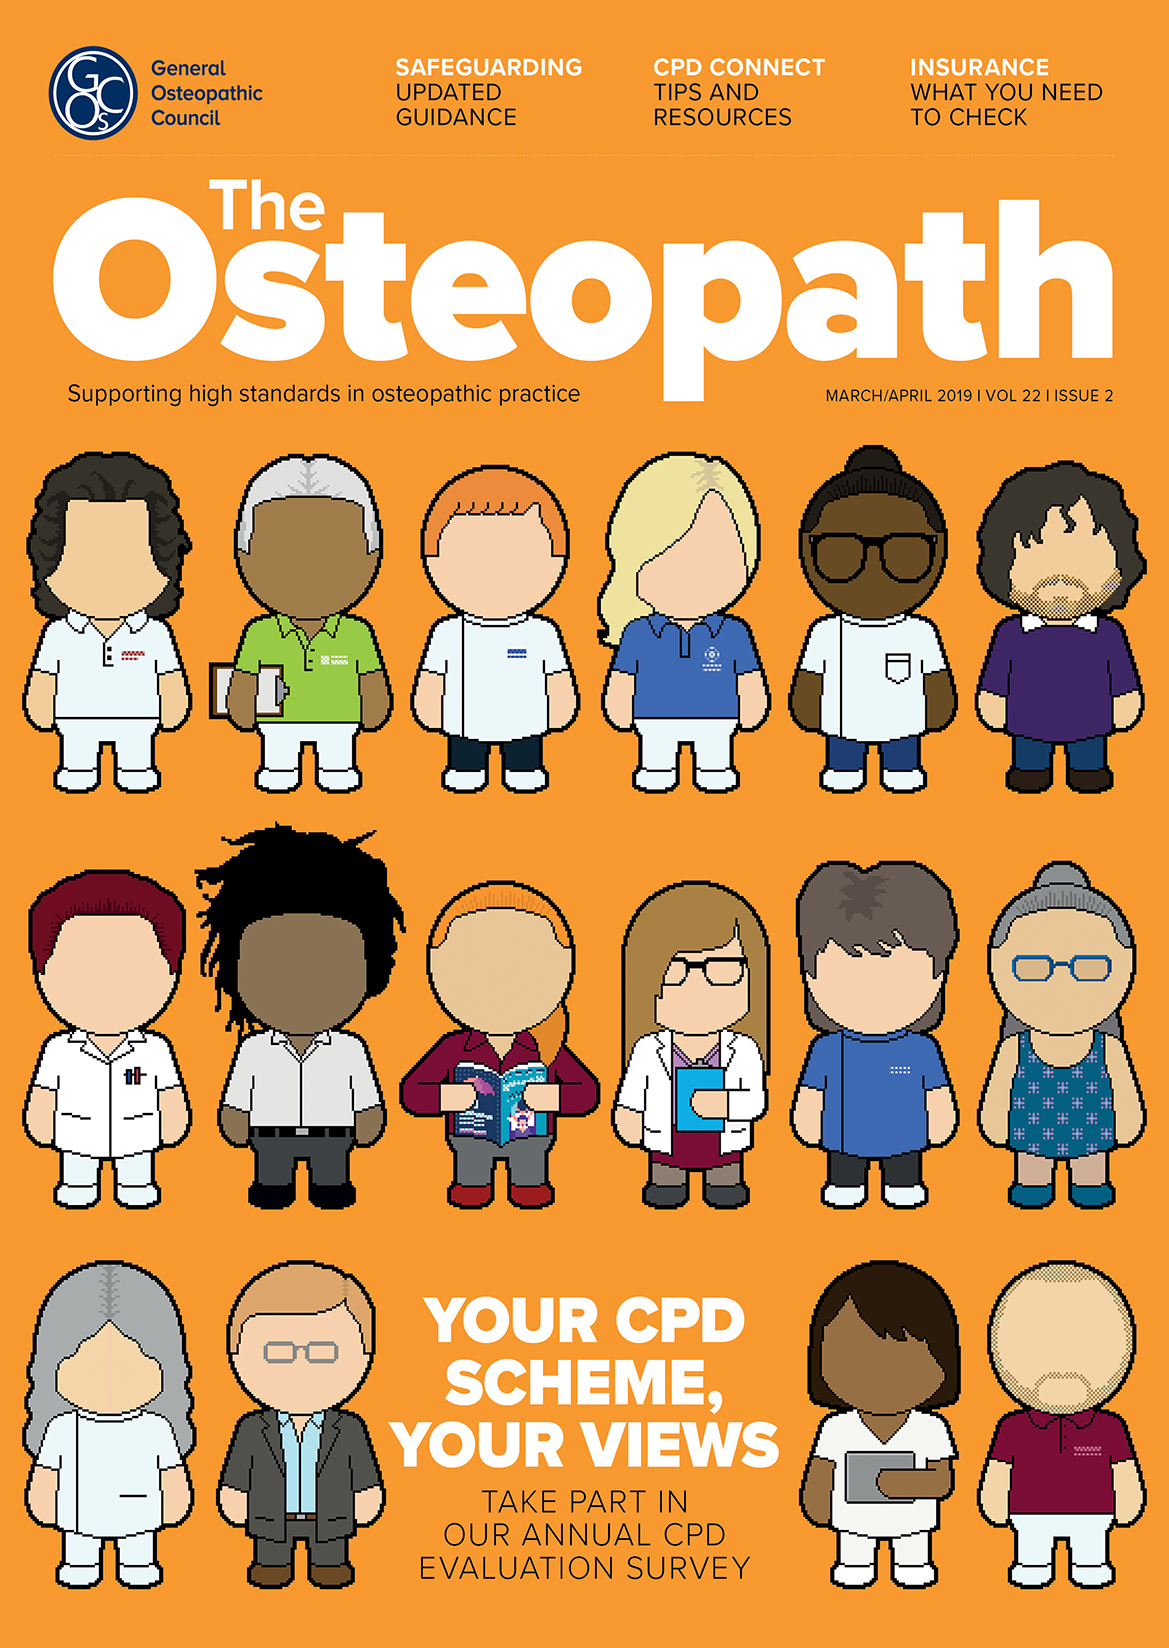 The Osteopath vol 22 issue 2 front cover